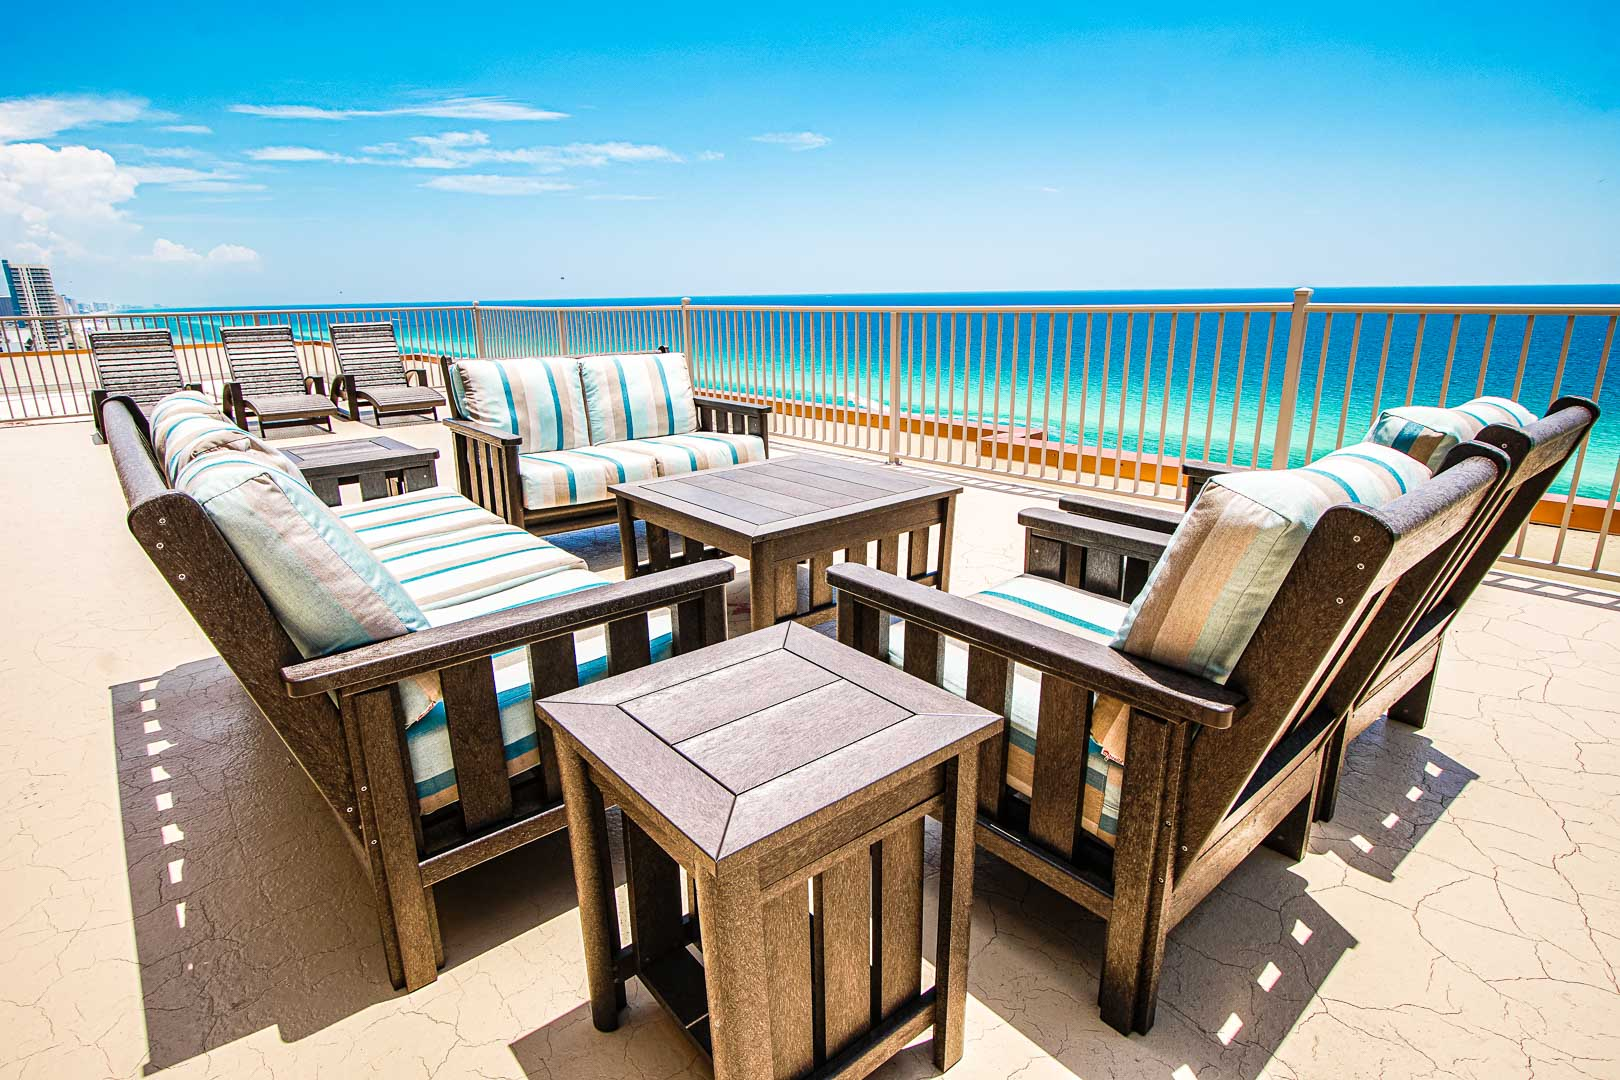 A relaxing view of the beach at VRI's Landmark Holiday Beach Resort in Panama City, Florida.